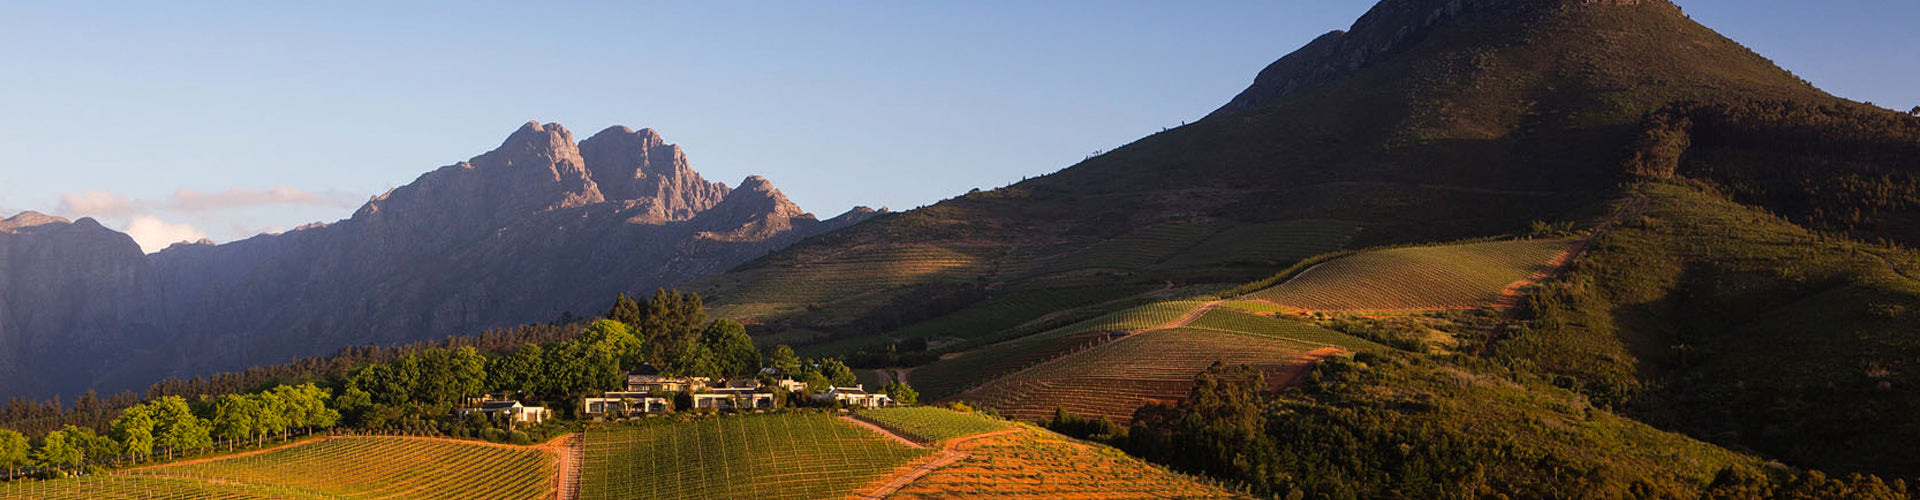 Delaire Graff Vineyards in Stellenbosch South Africa